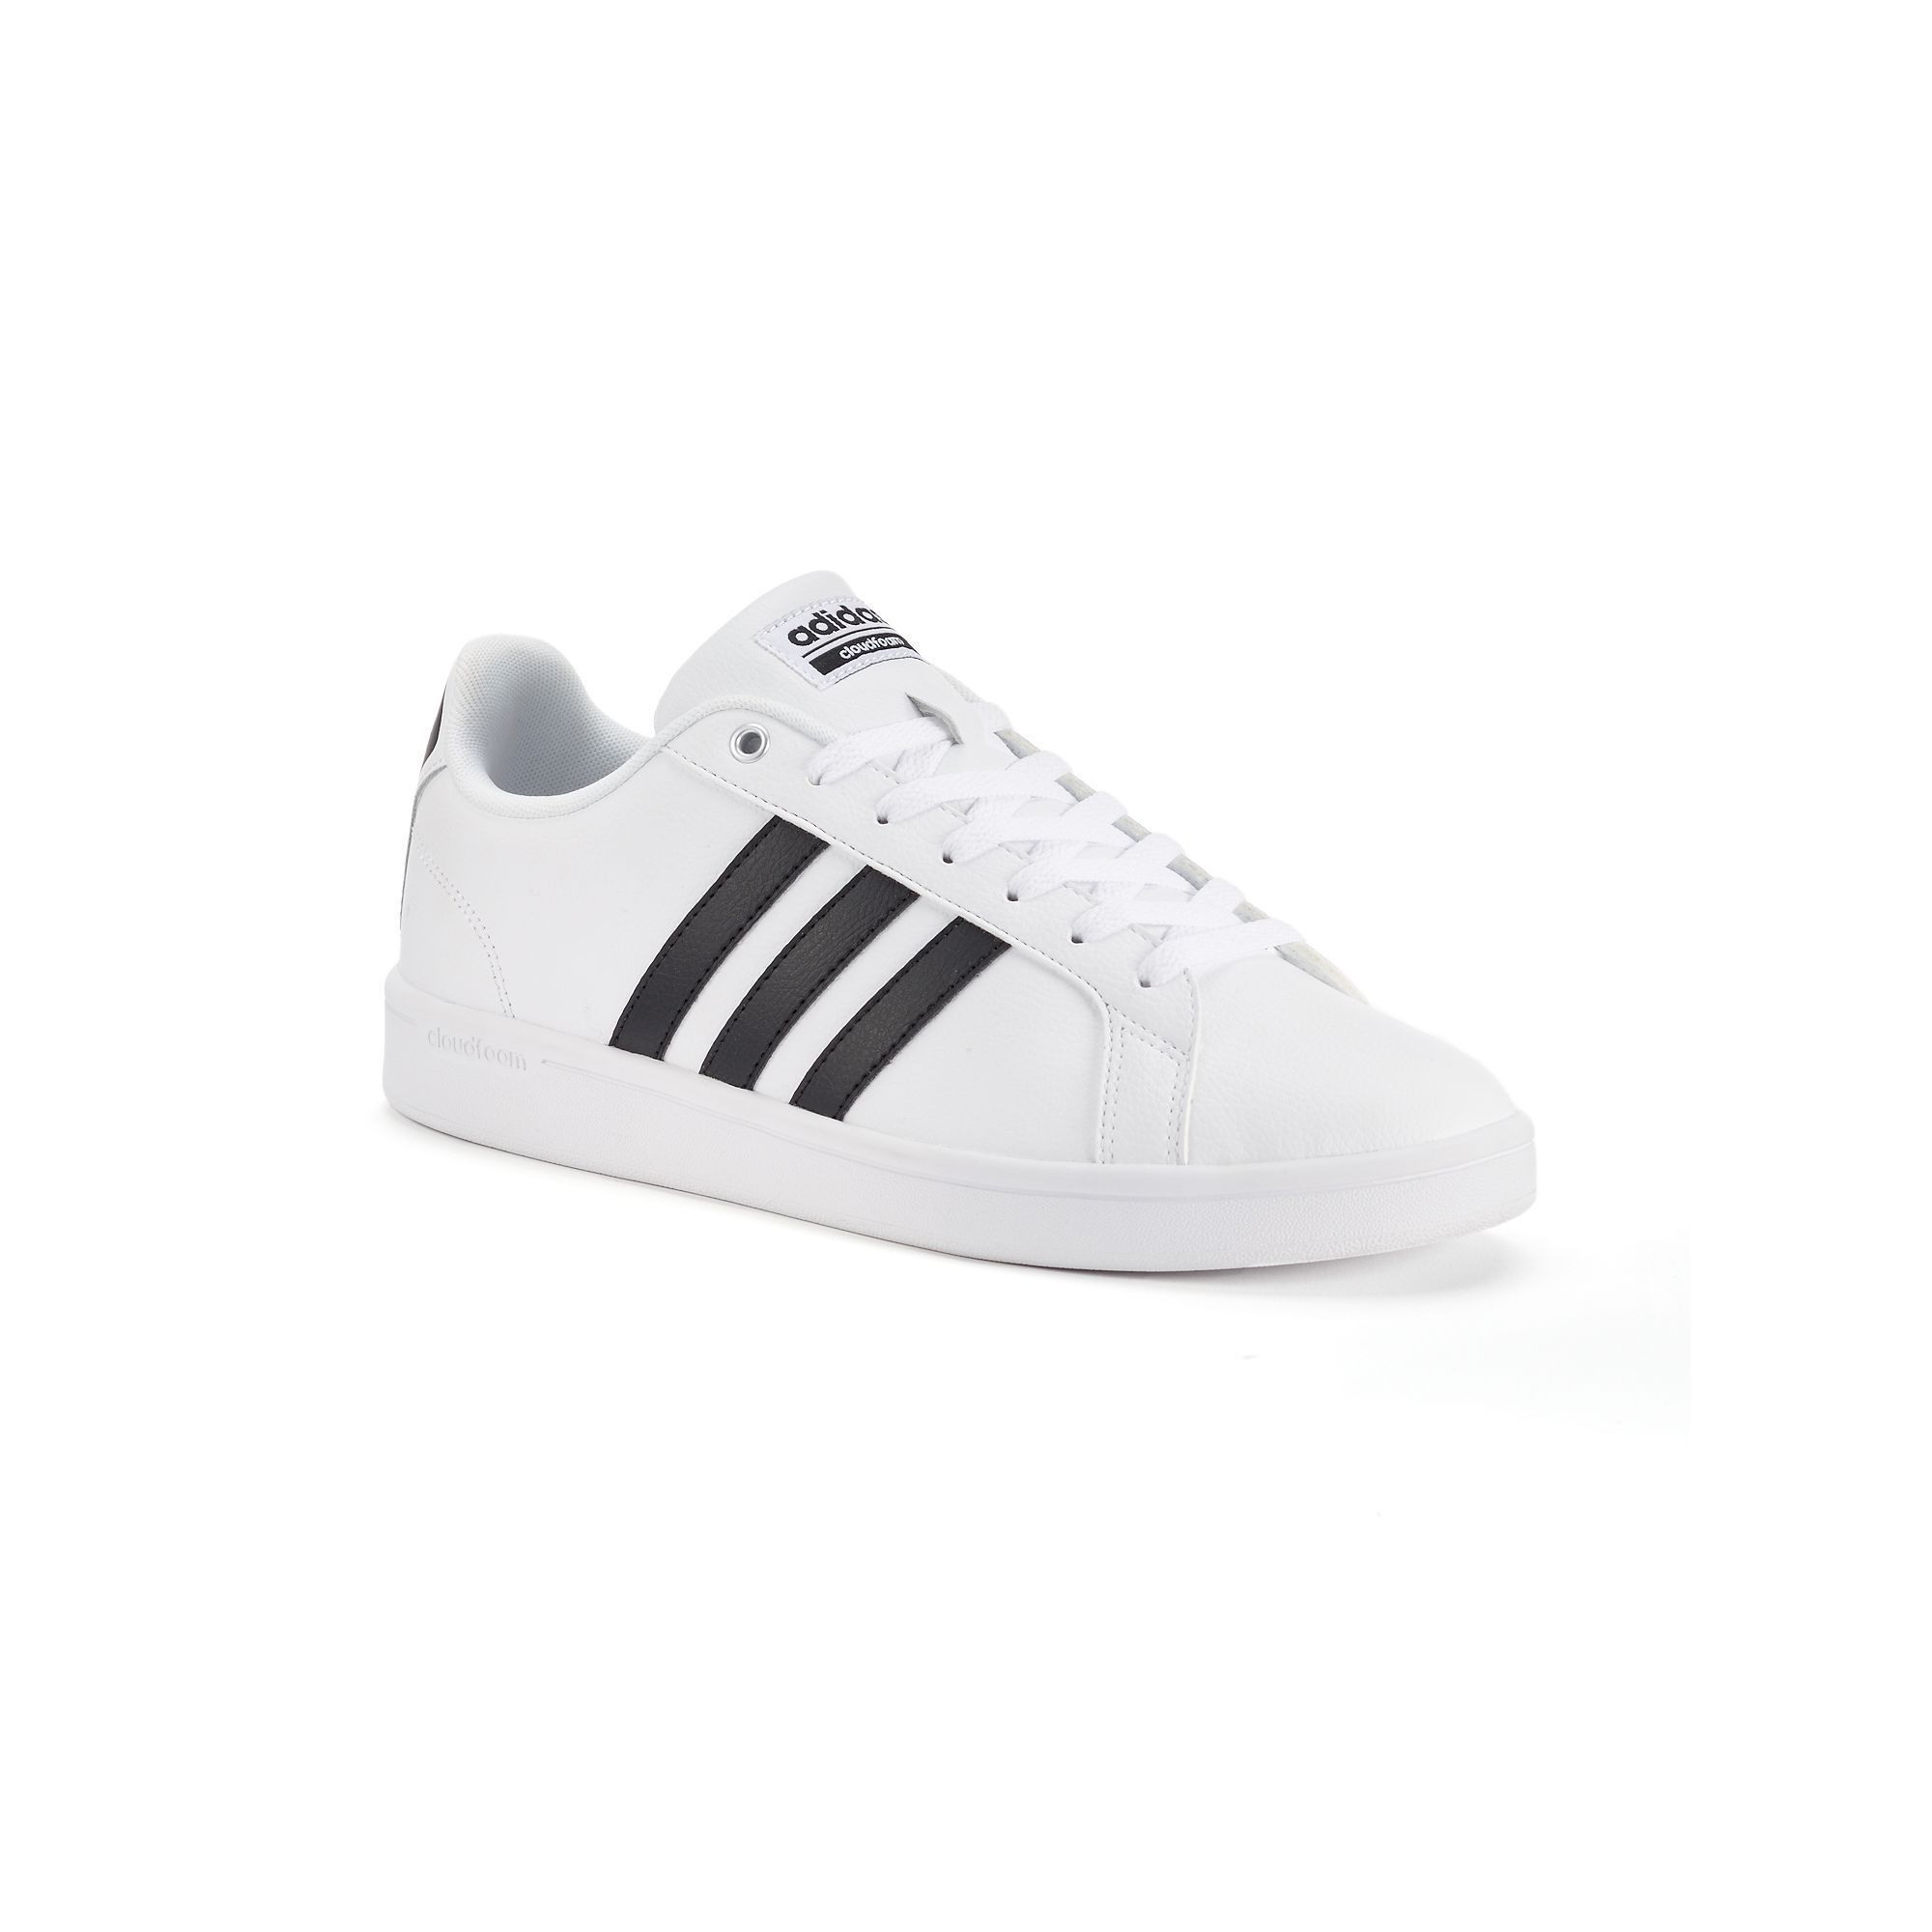 Adidas NEO Cloudfoam Advantage Stripe Men's Shoes, Size: 10.5, White